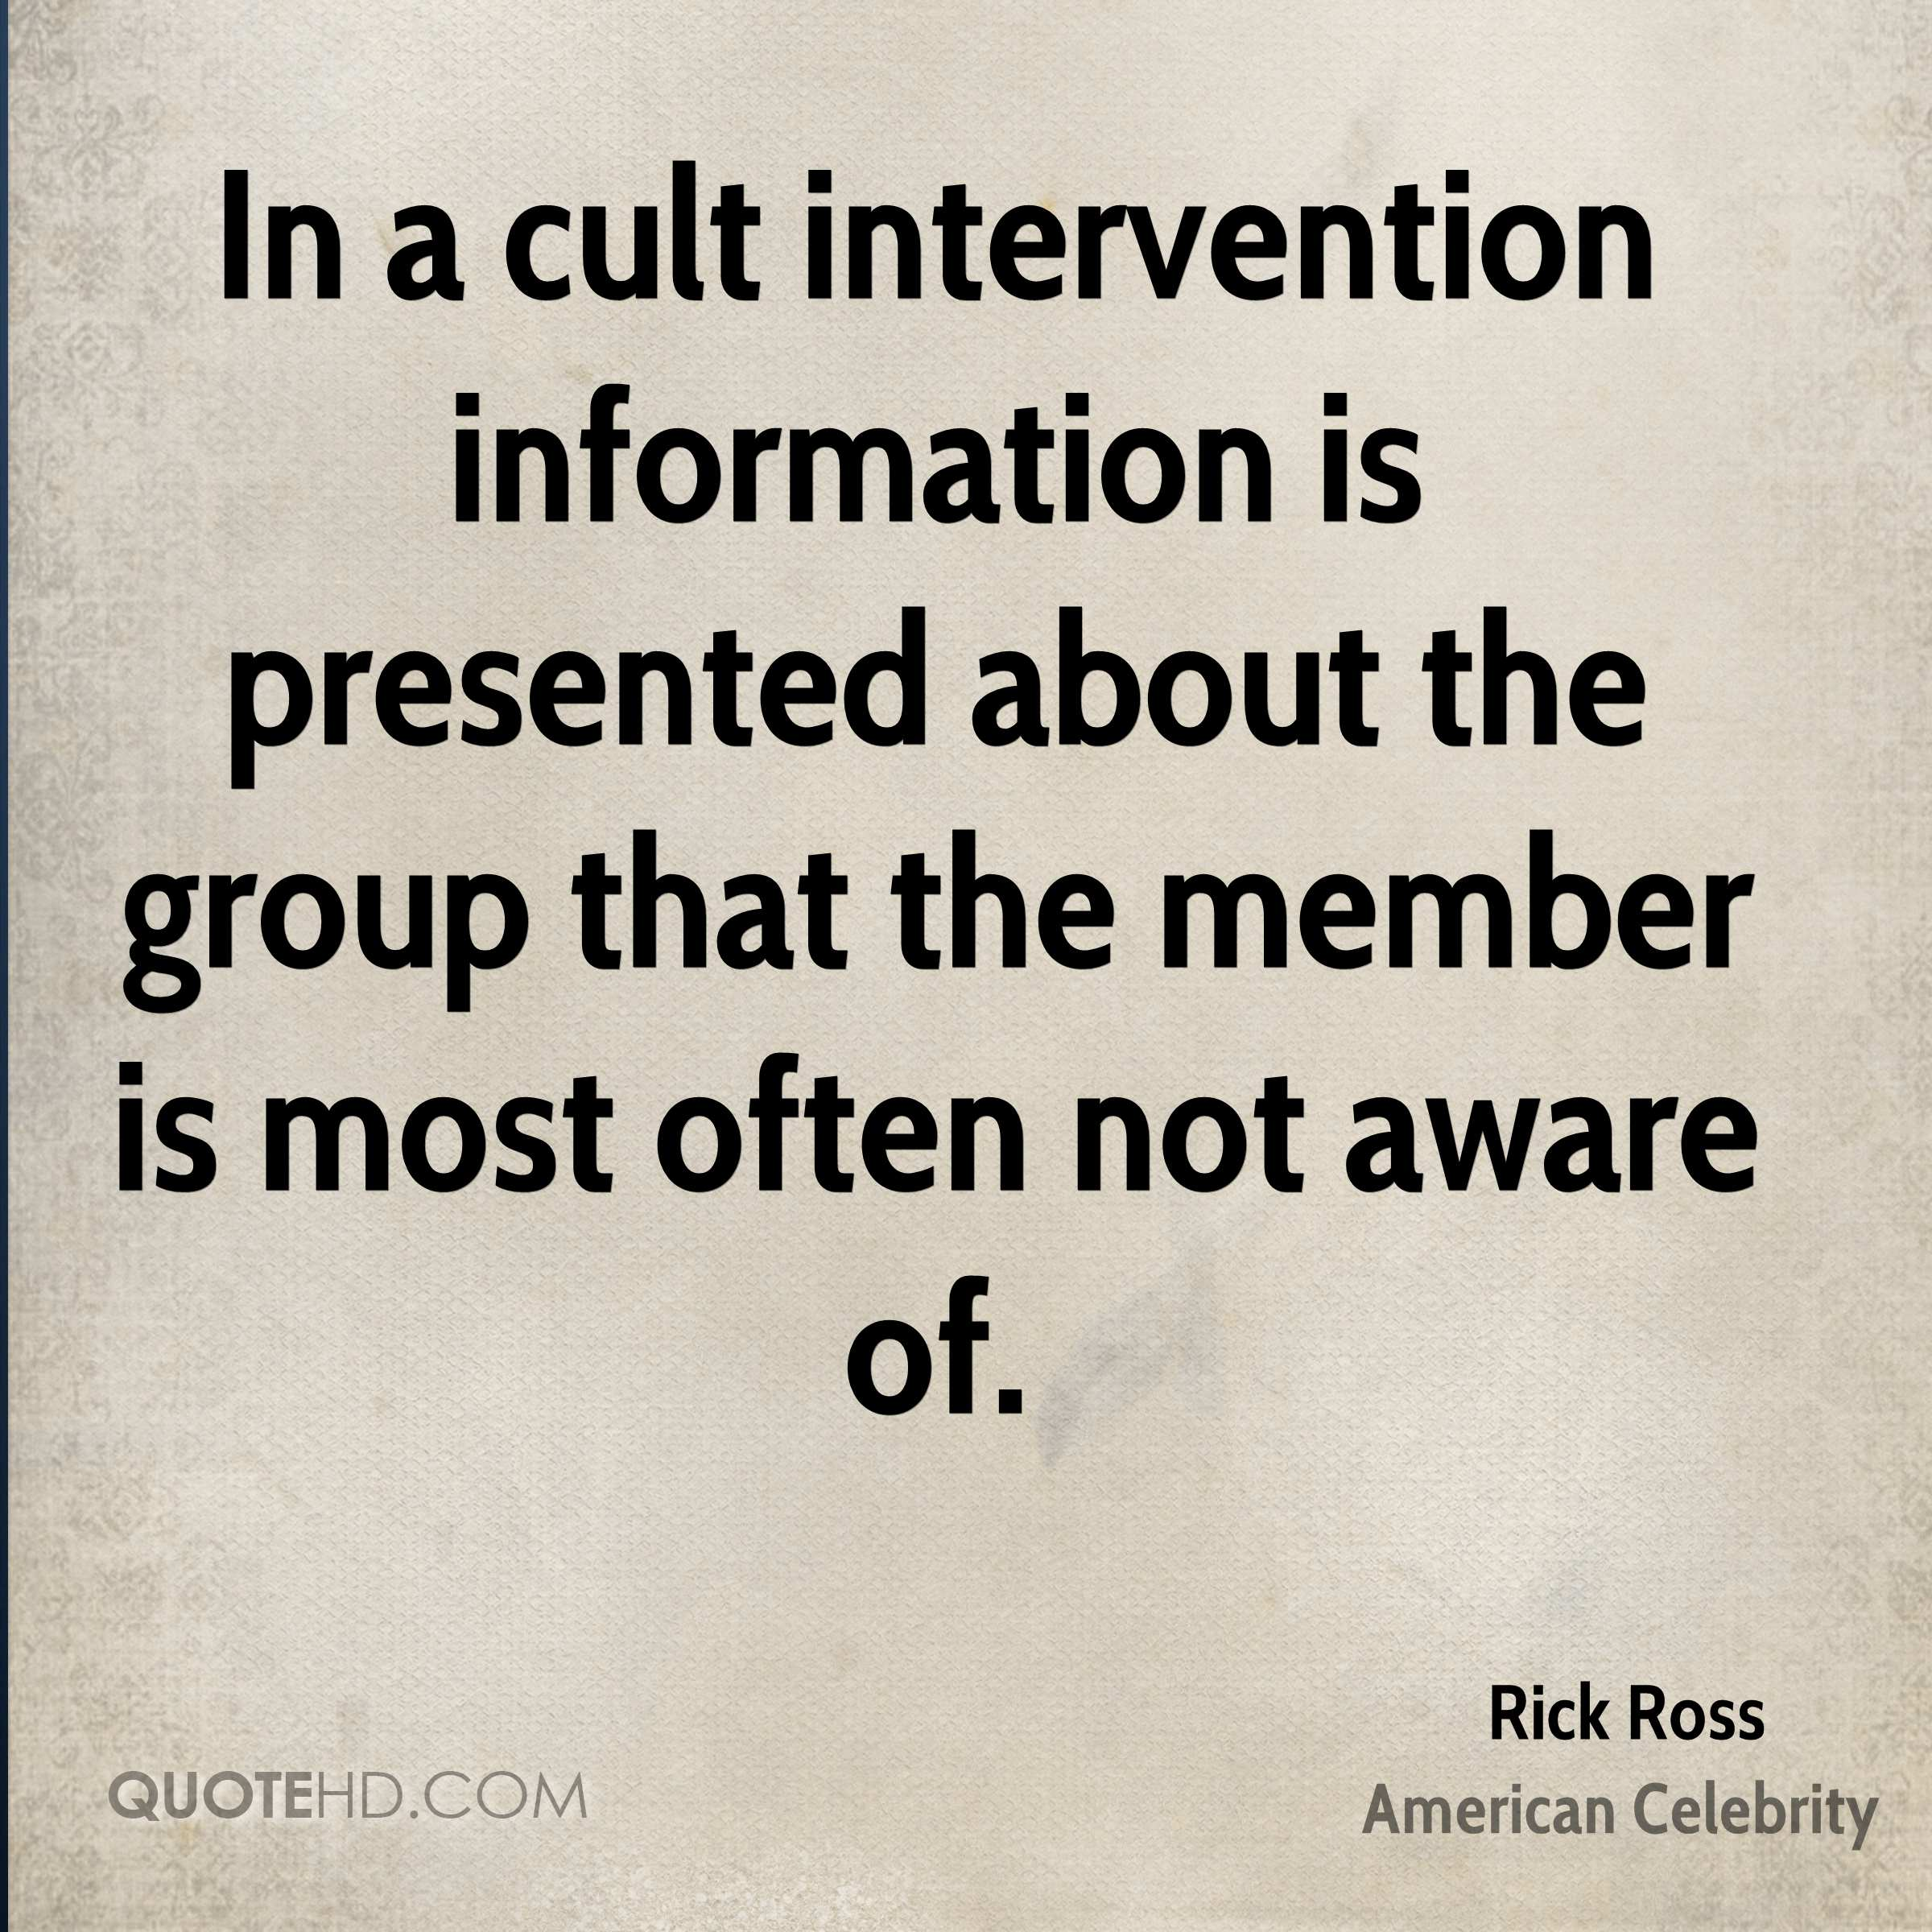 In a cult intervention information is presented about the group that the member is most often not aware of.